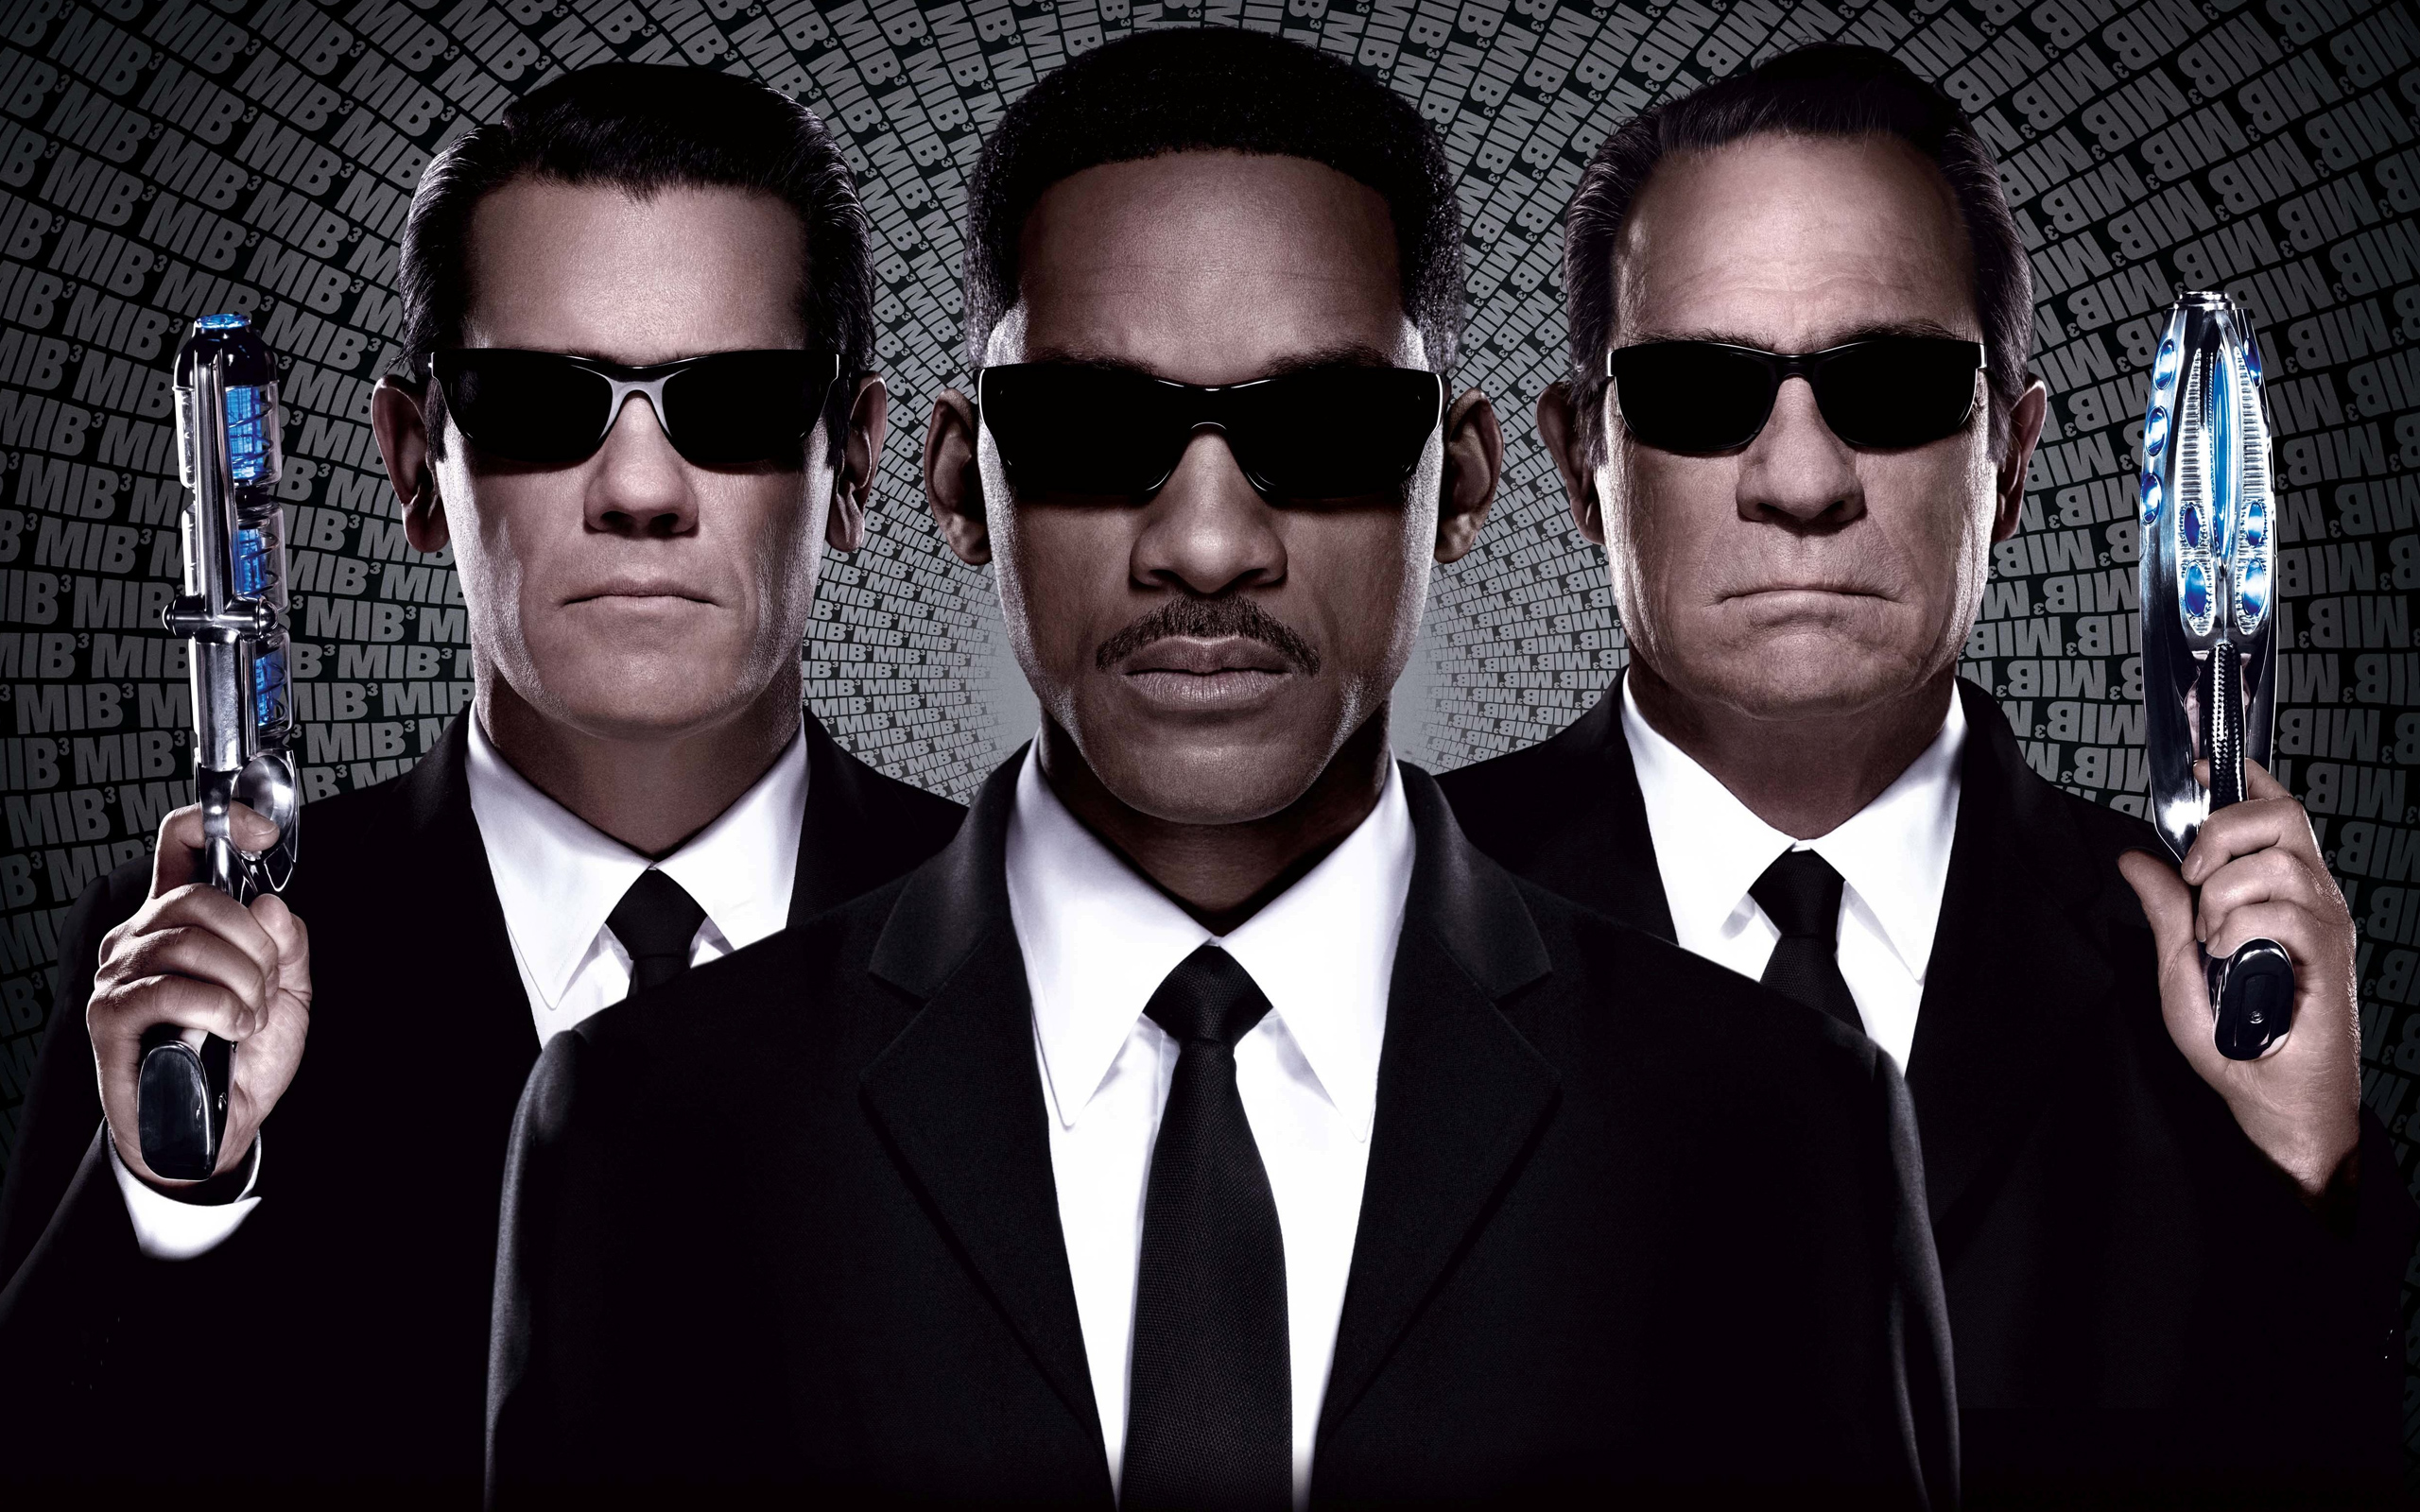 Men in Black 3 III 427.4 Kb